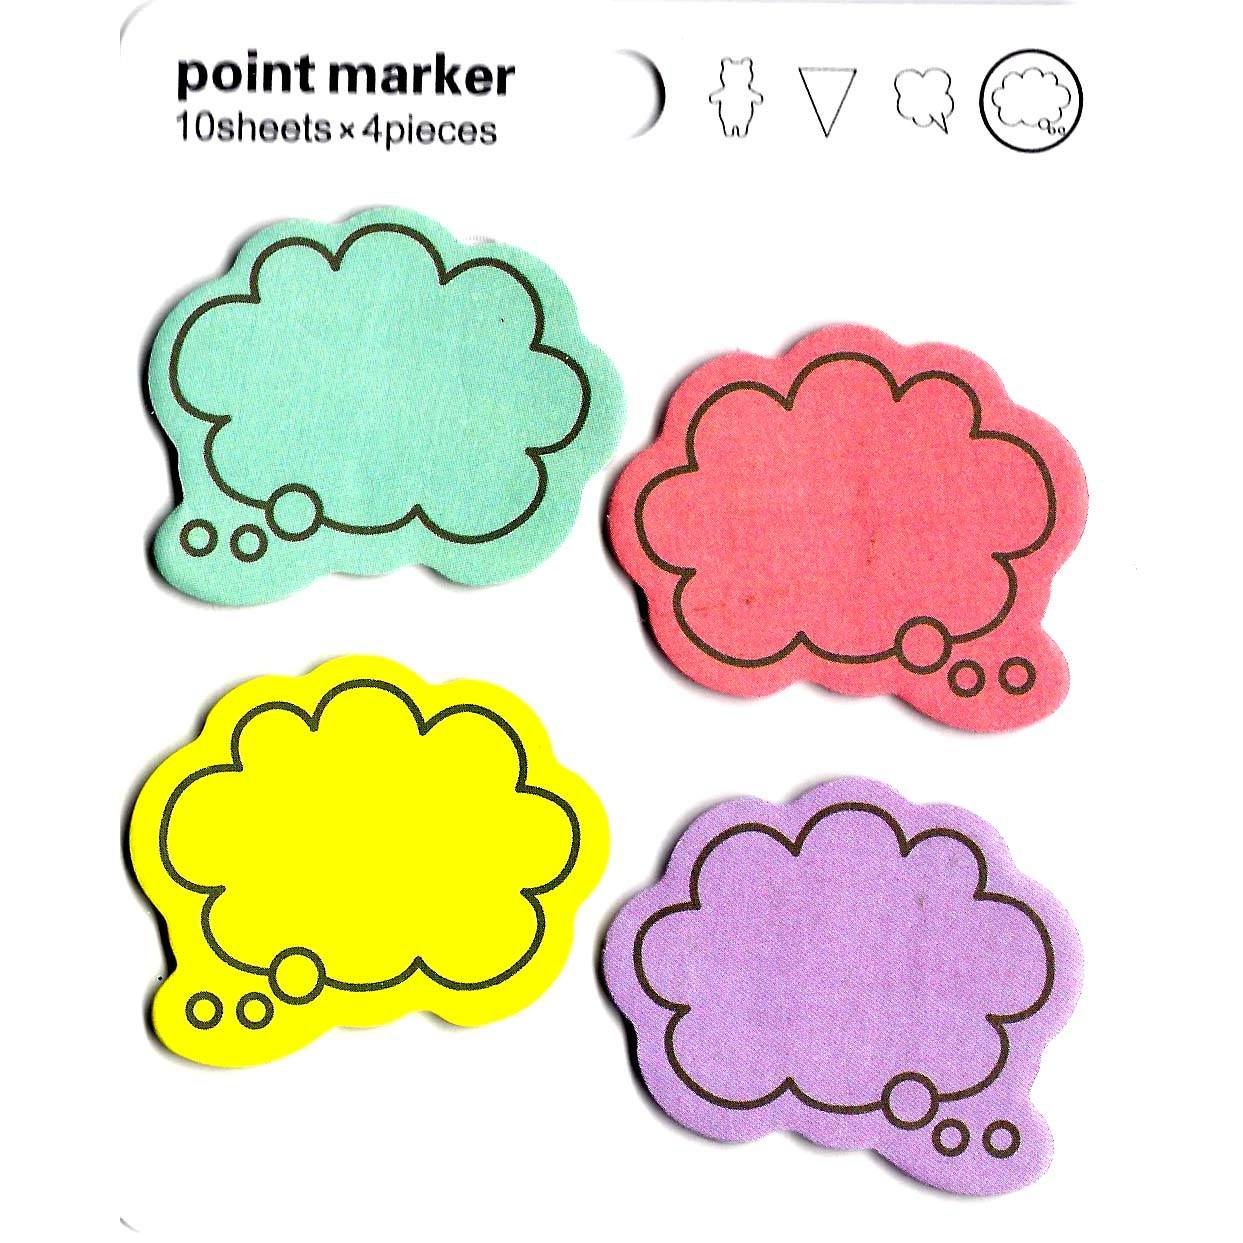 Colorful Speech Bubble Outline Shaped Memo Sticky Post-it Notes